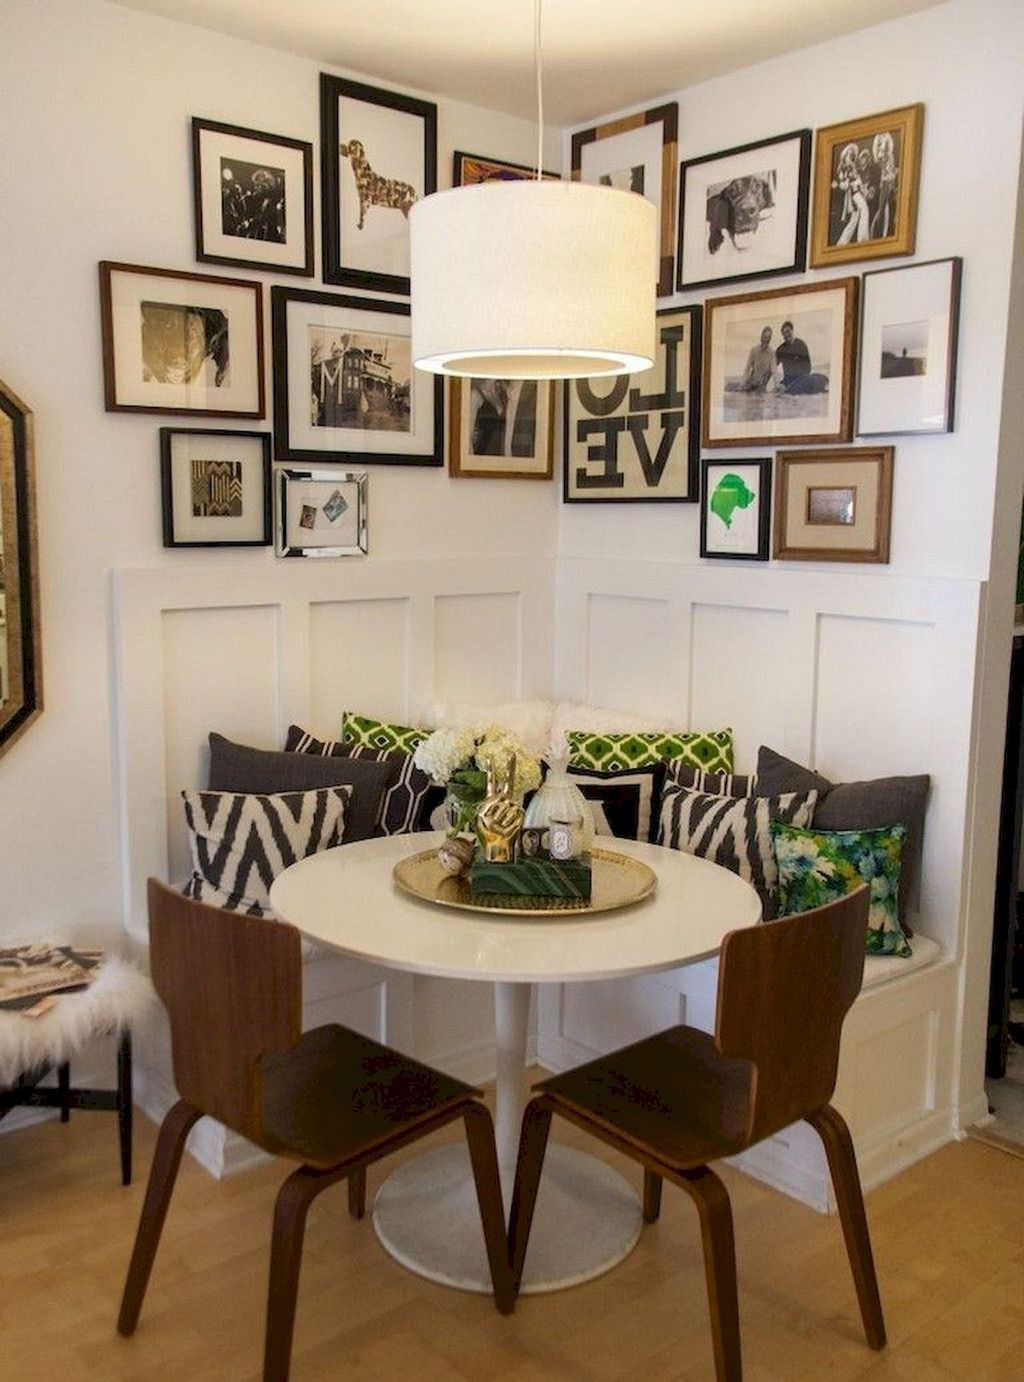 33 Unique Small Dining Room Design Ideas That You Can Try In Your